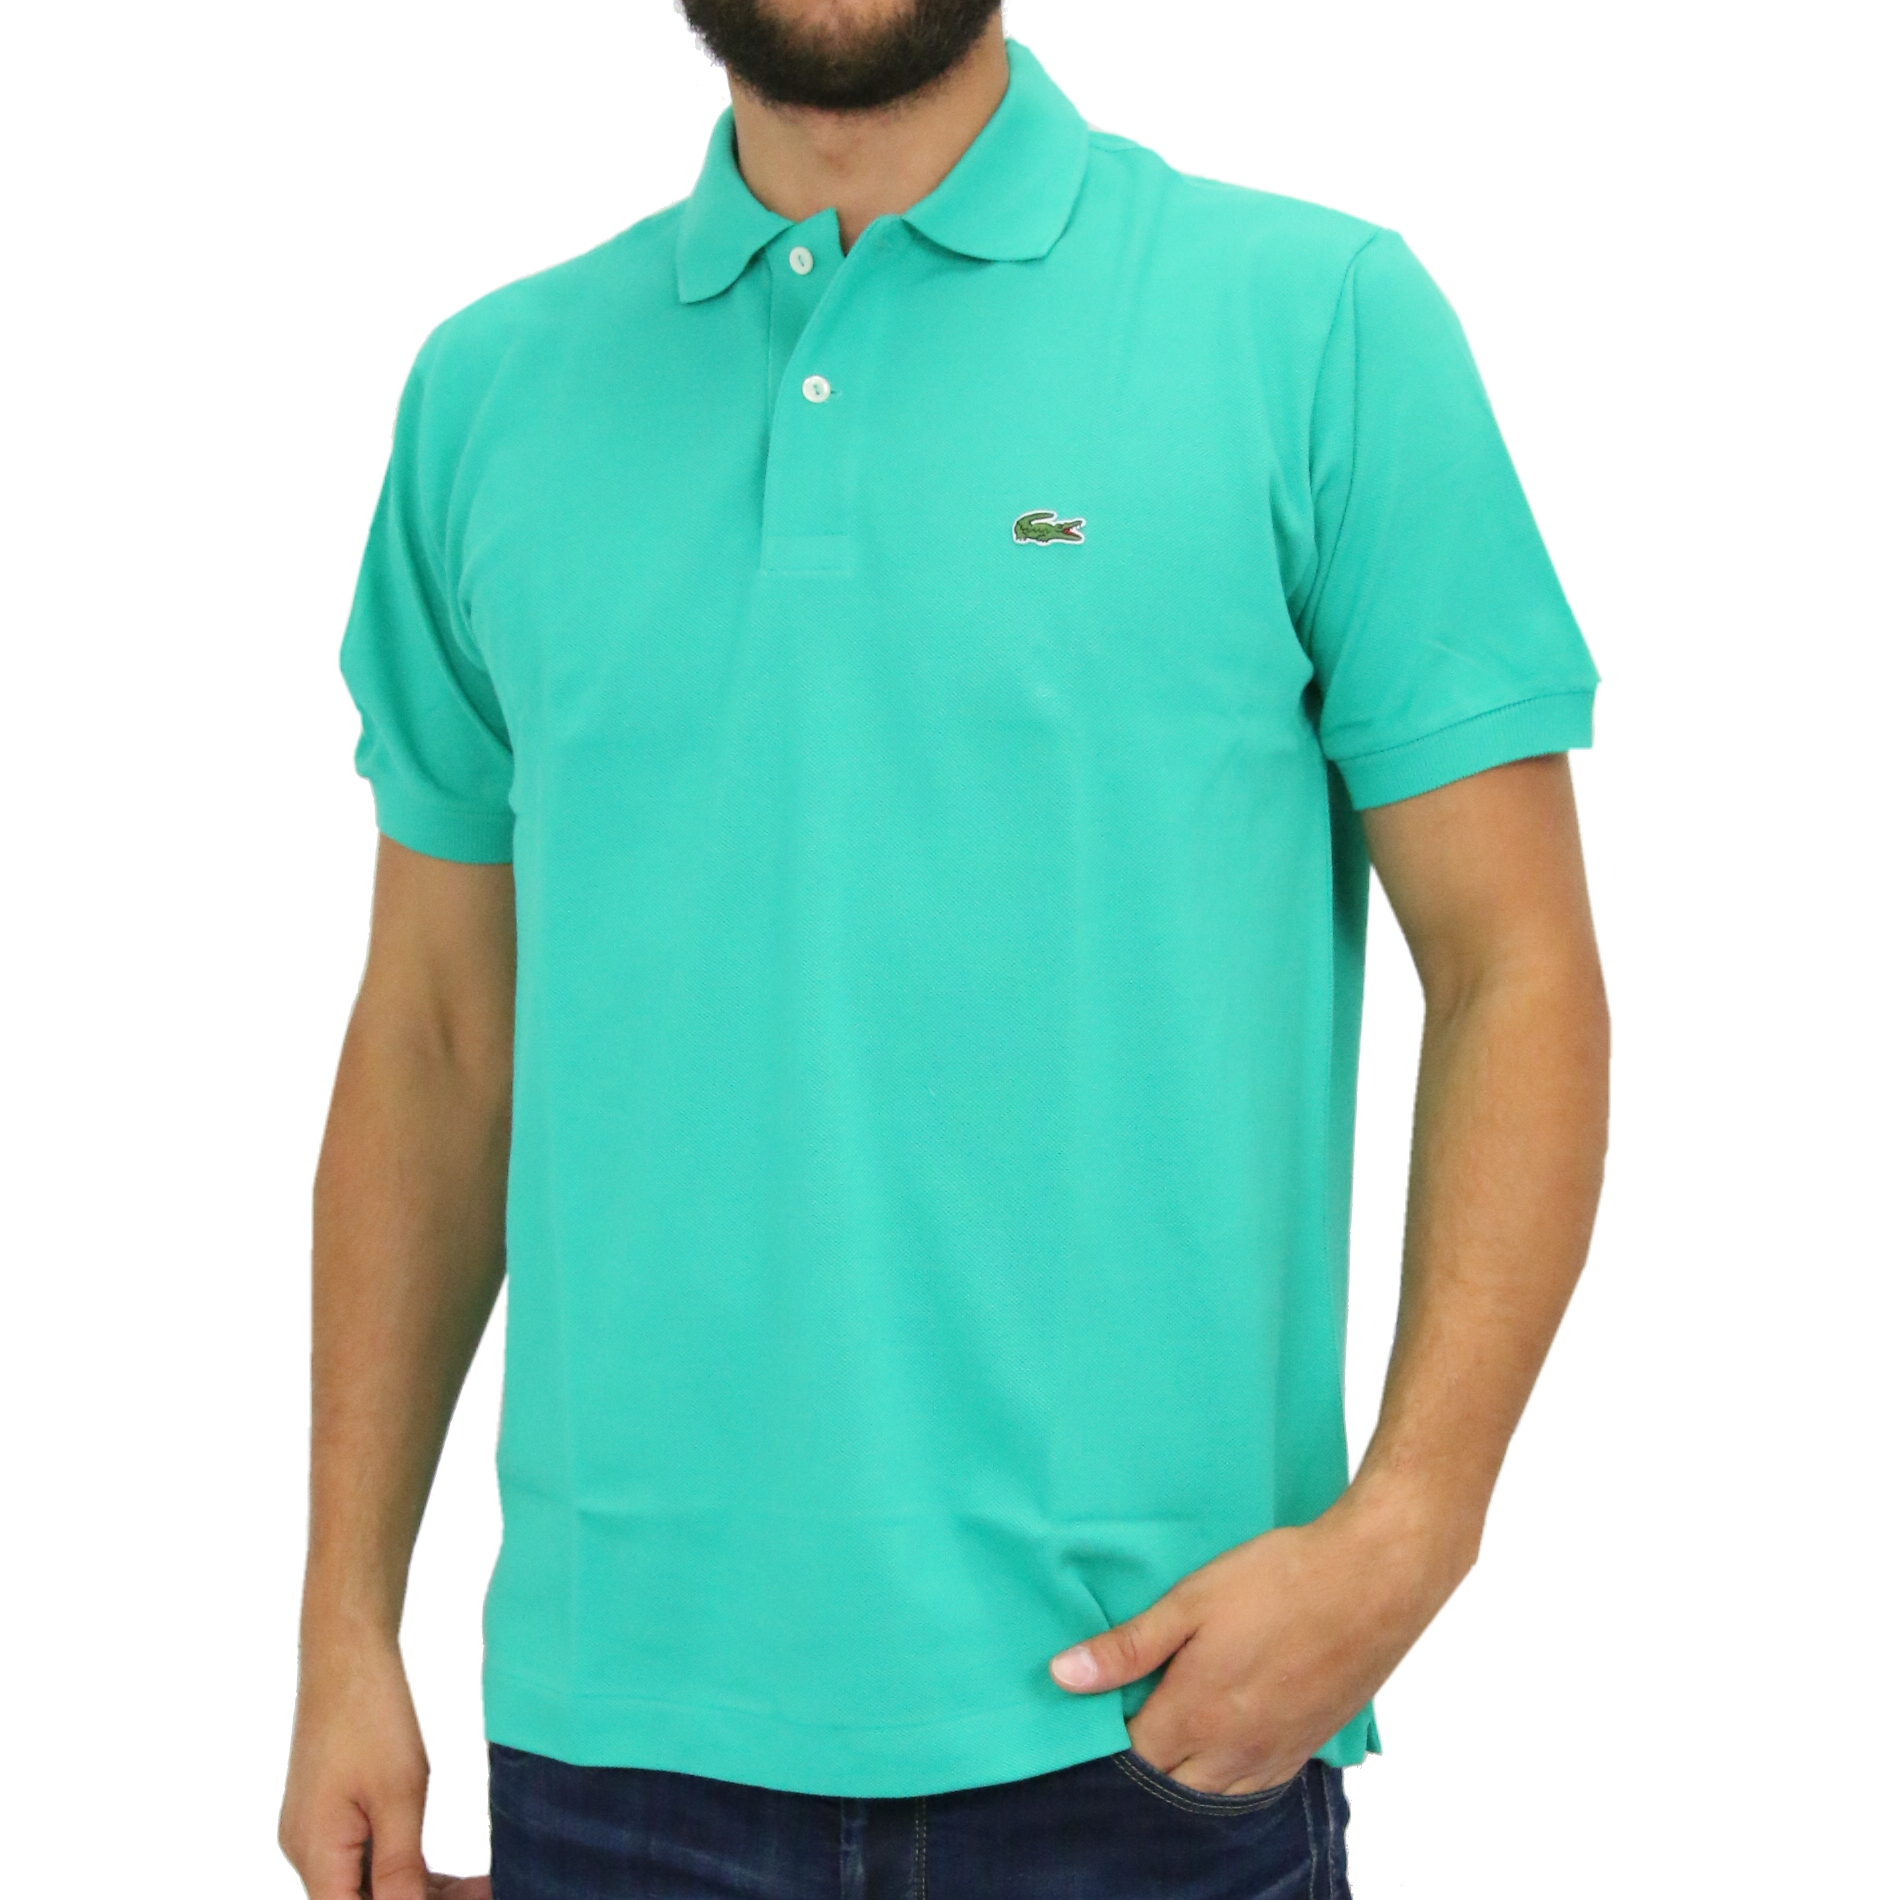 Find great deals on eBay for australian polo shirt. Shop with confidence.